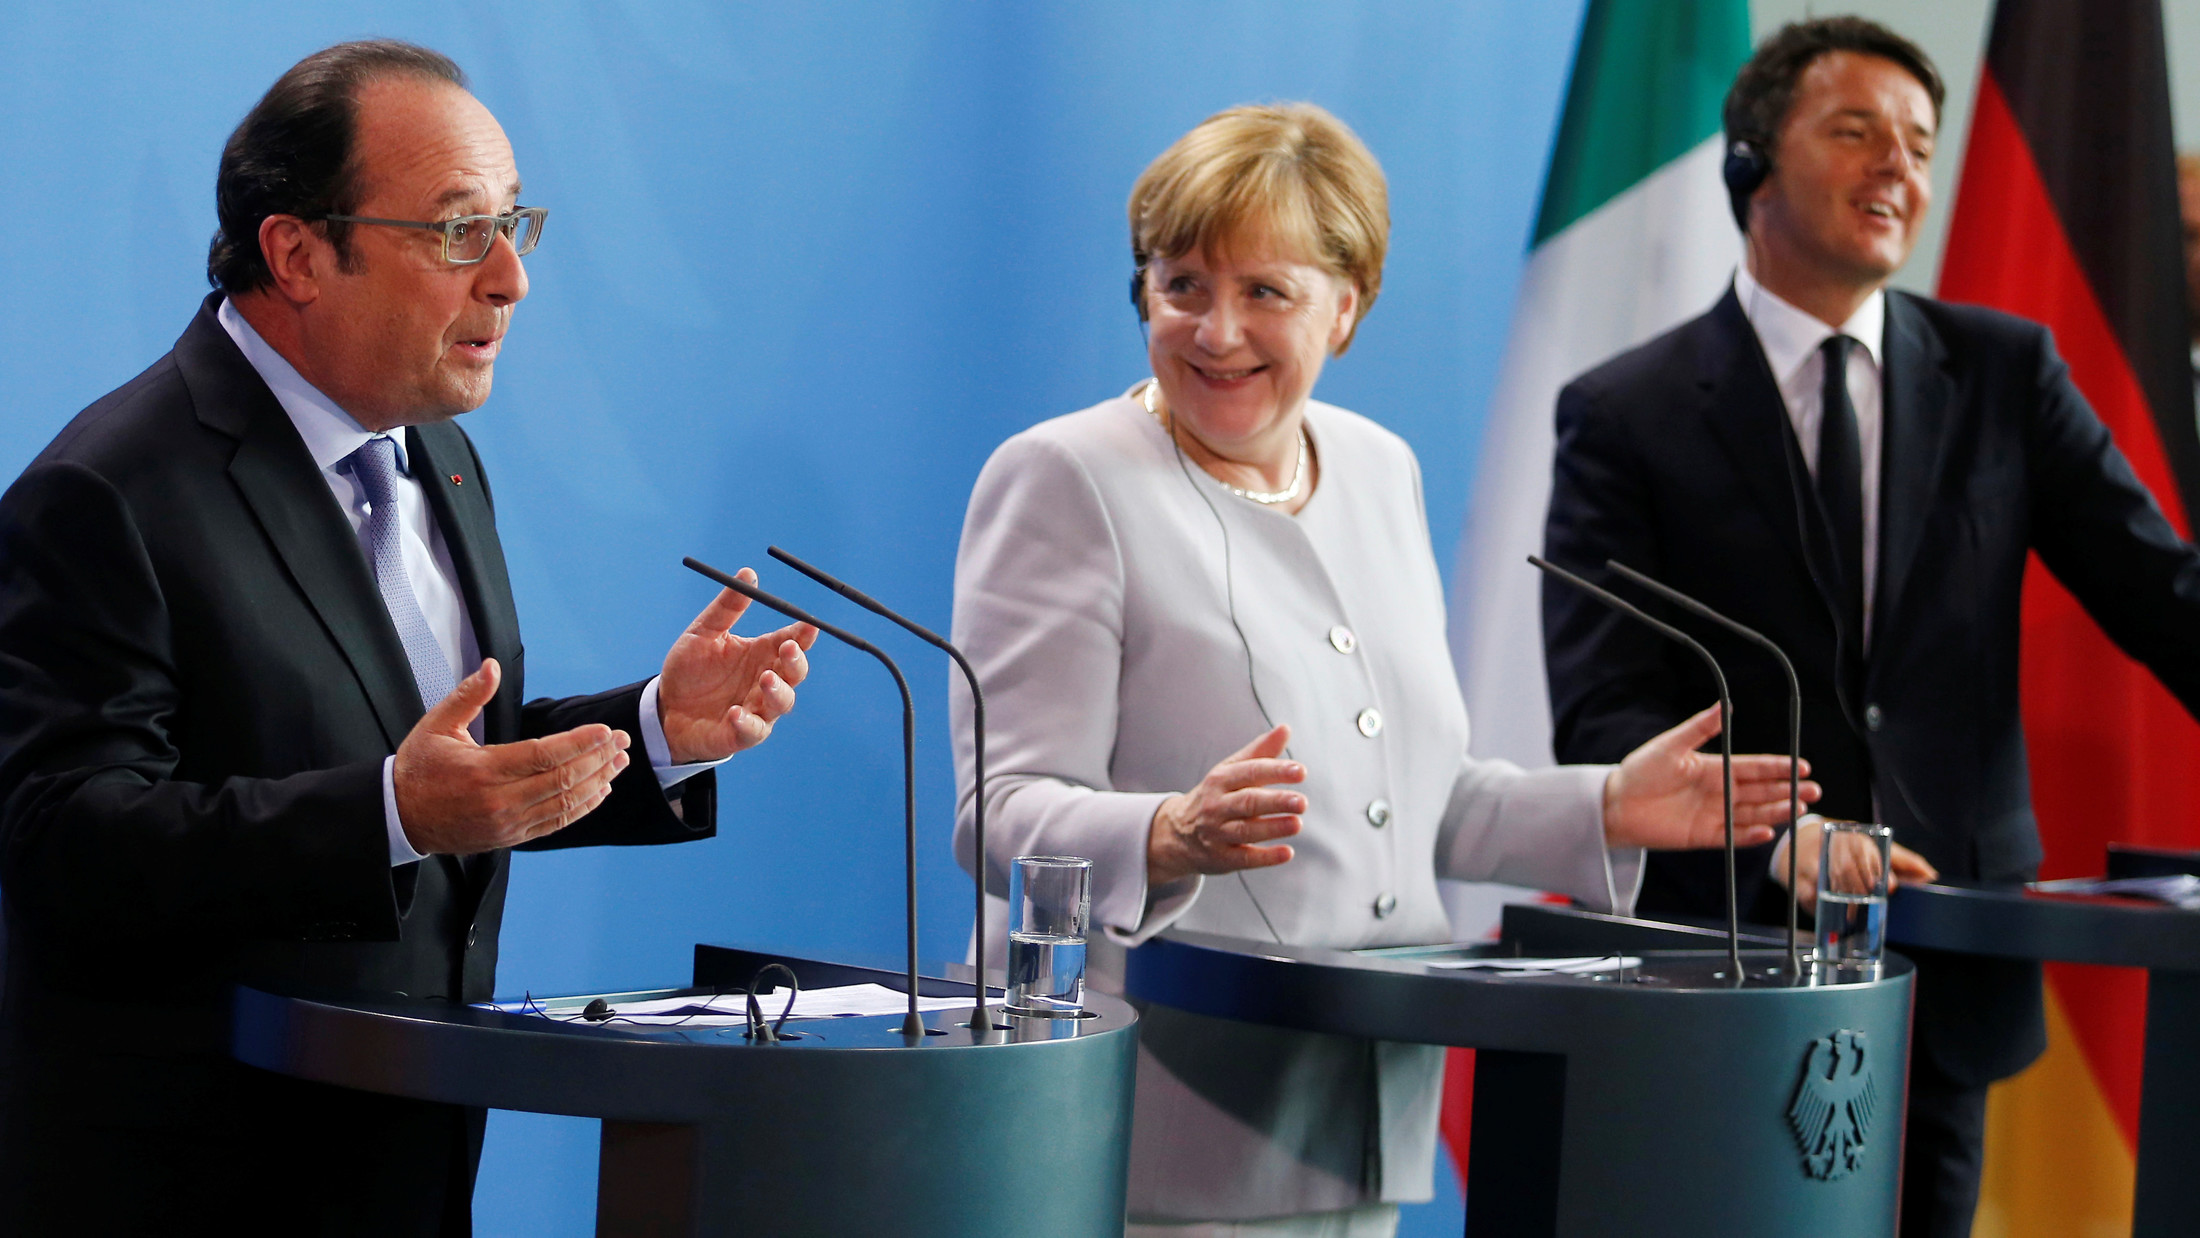 German Chancellor Angela Merkel (C), French President Francois Hollande (L) and Italian Prime Minister Matteo Renzi attend a news conference at the chancellery during discussions on the outcome of the Brexit in Berlin, Germany, June 27, 2016